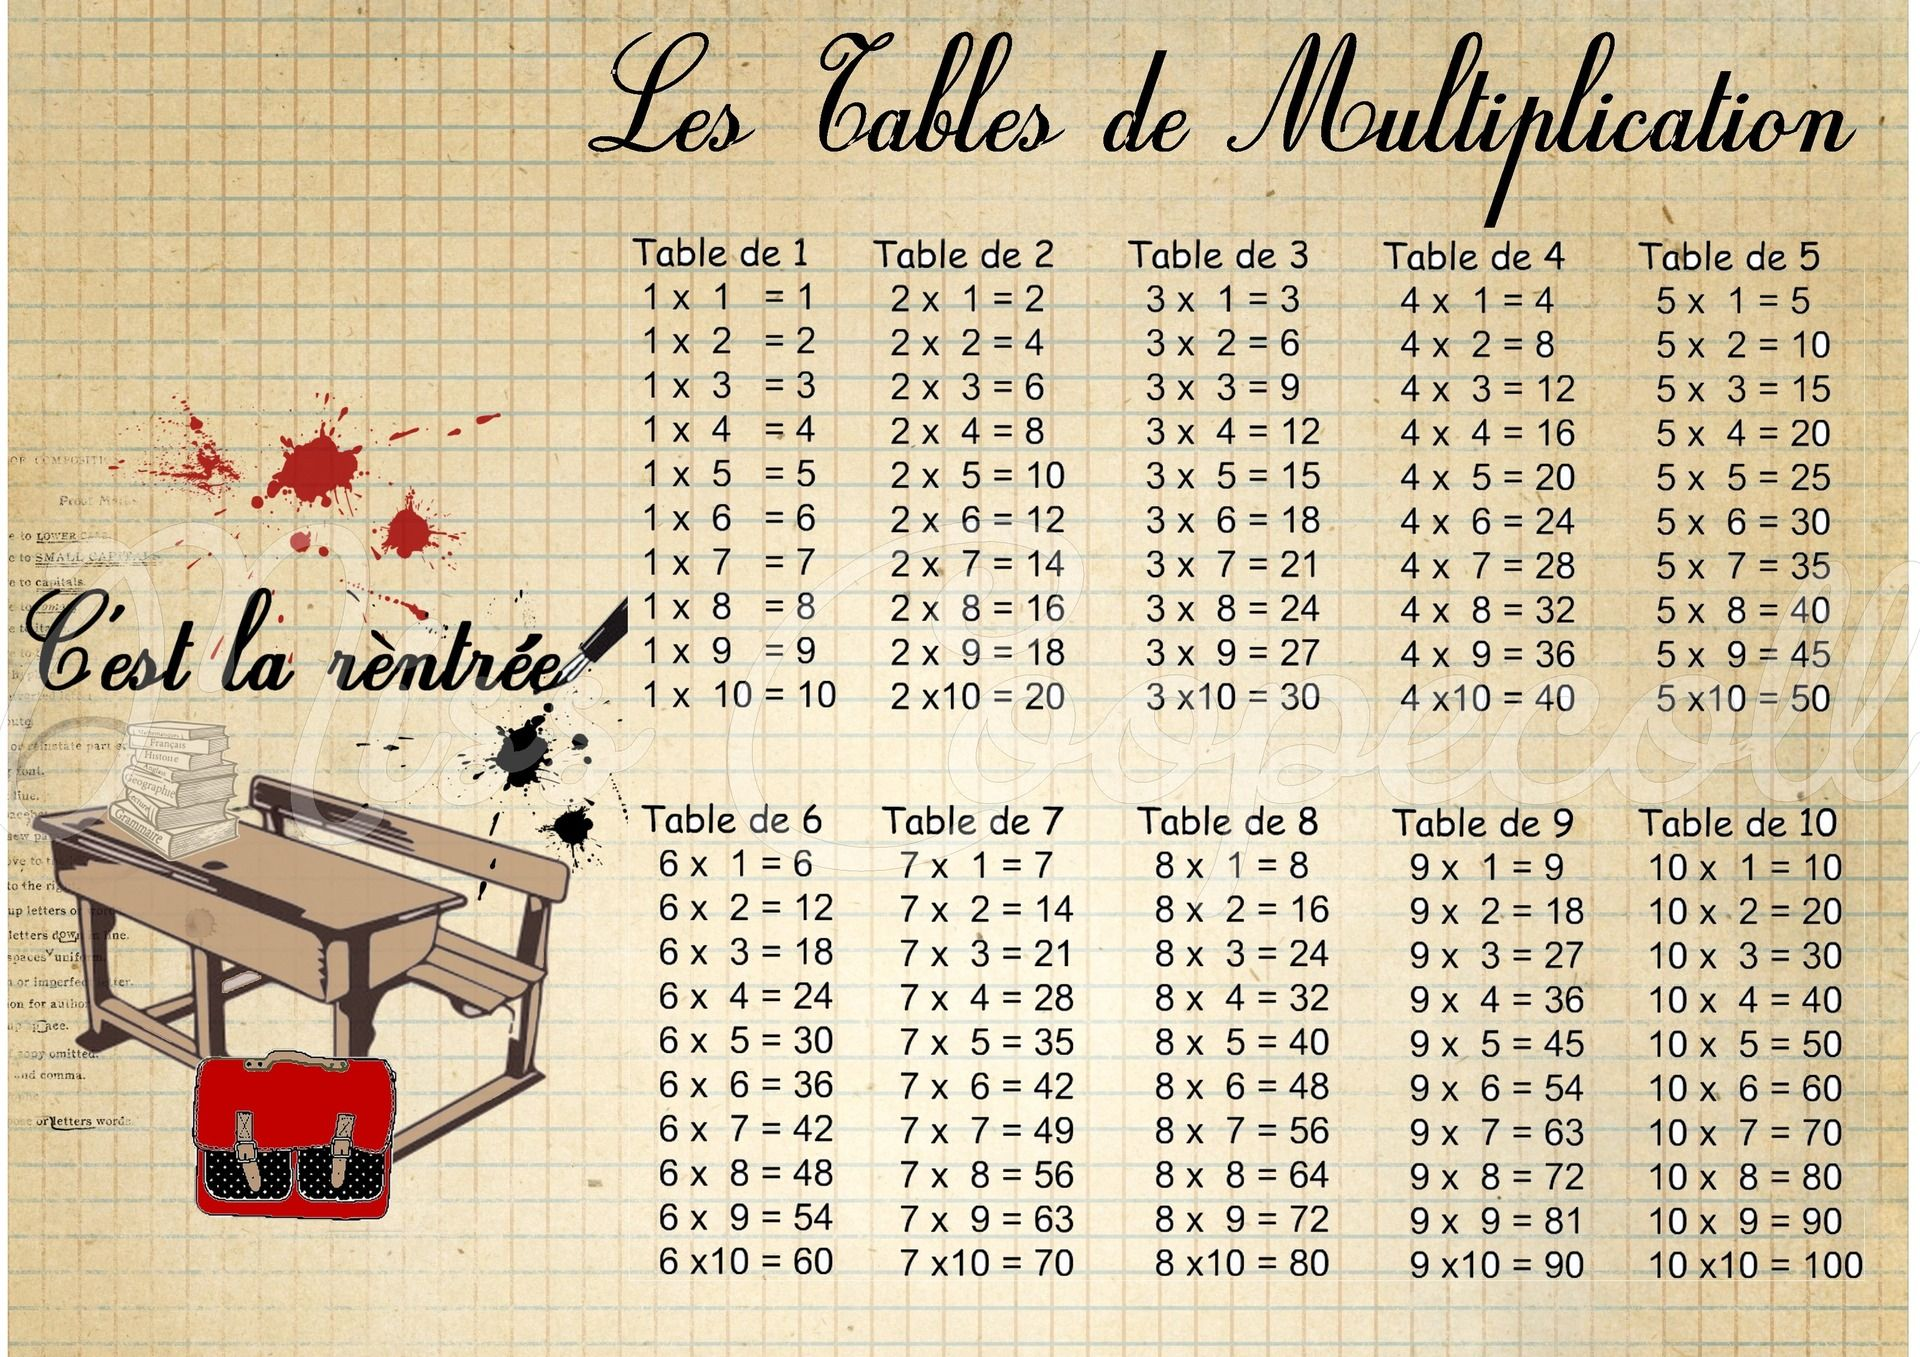 Table de multiplication plastifi e format a4 c 39 est la for Table de multiplication par 7